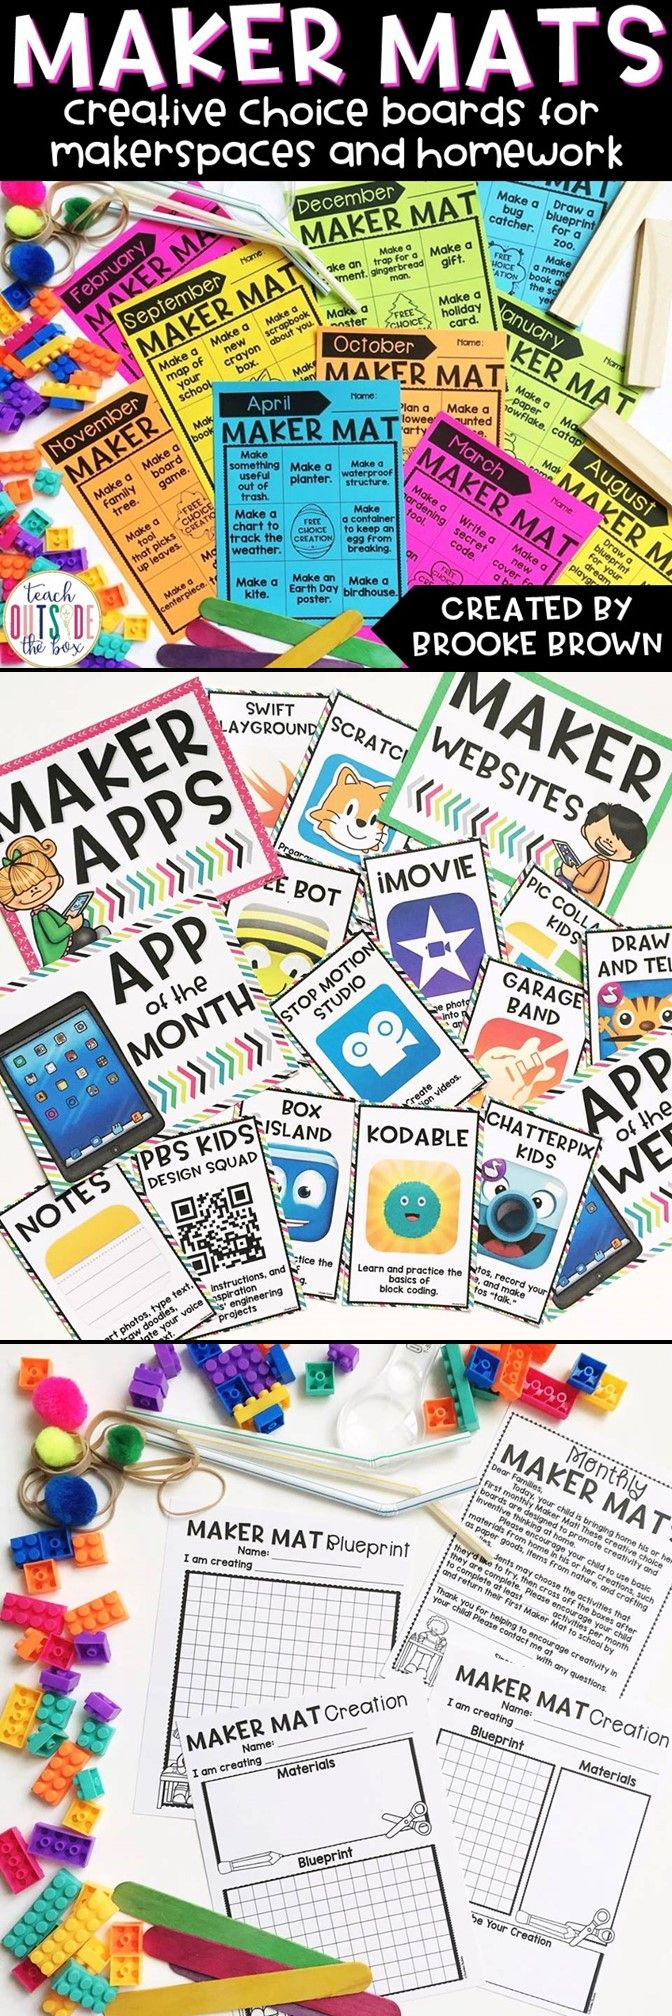 Maker Mats for MakerSpaces | Pinterest | Homework, Choices and Creative